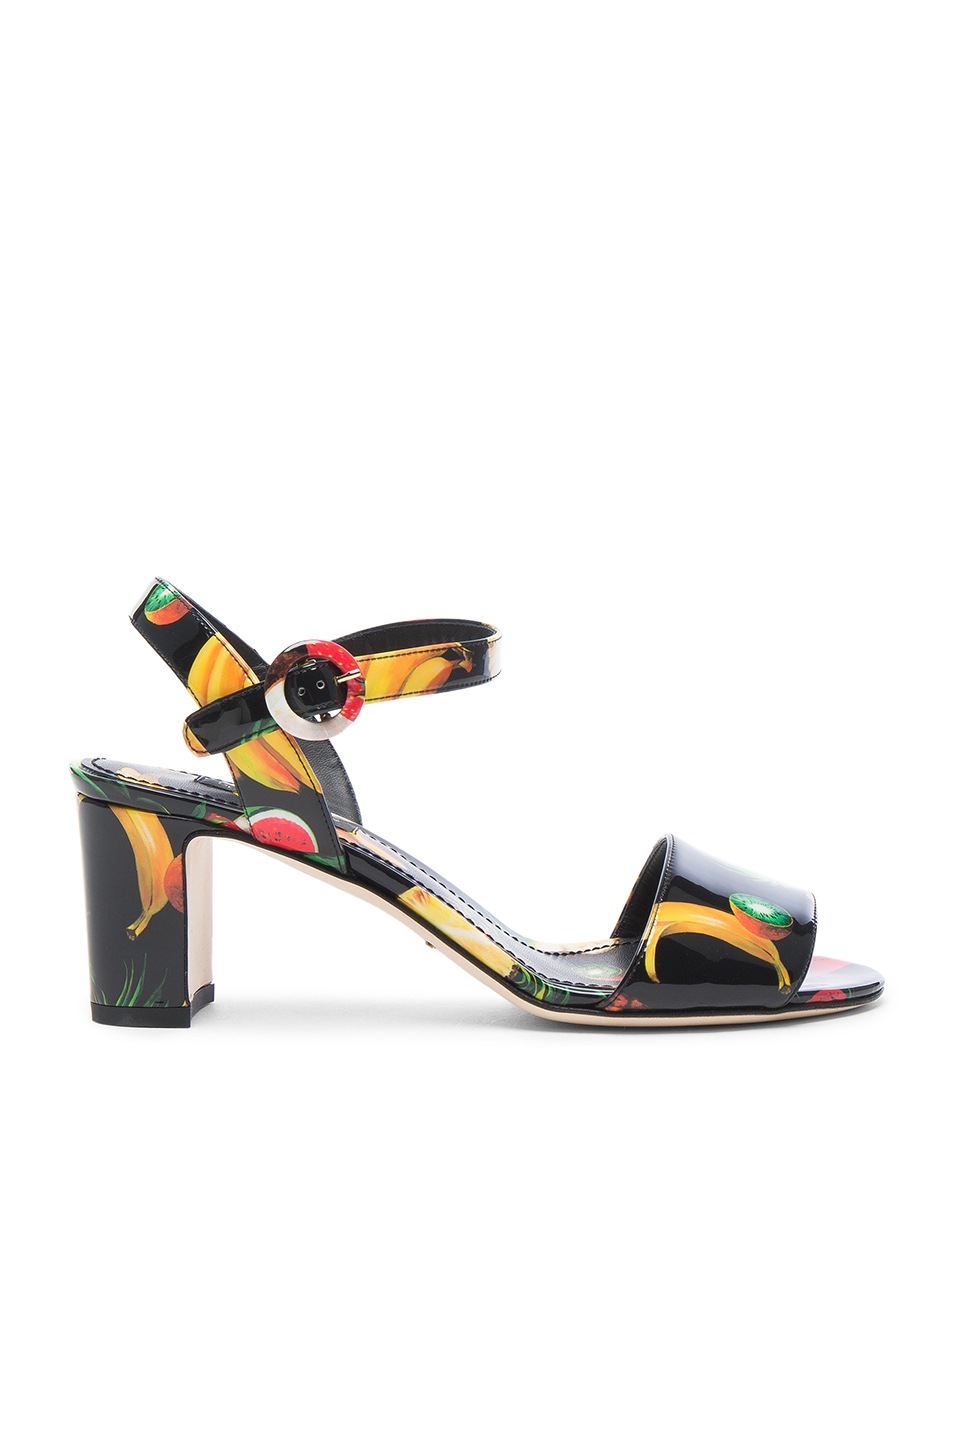 Dolce & Gabbana Heeled Sandals in Black,Red